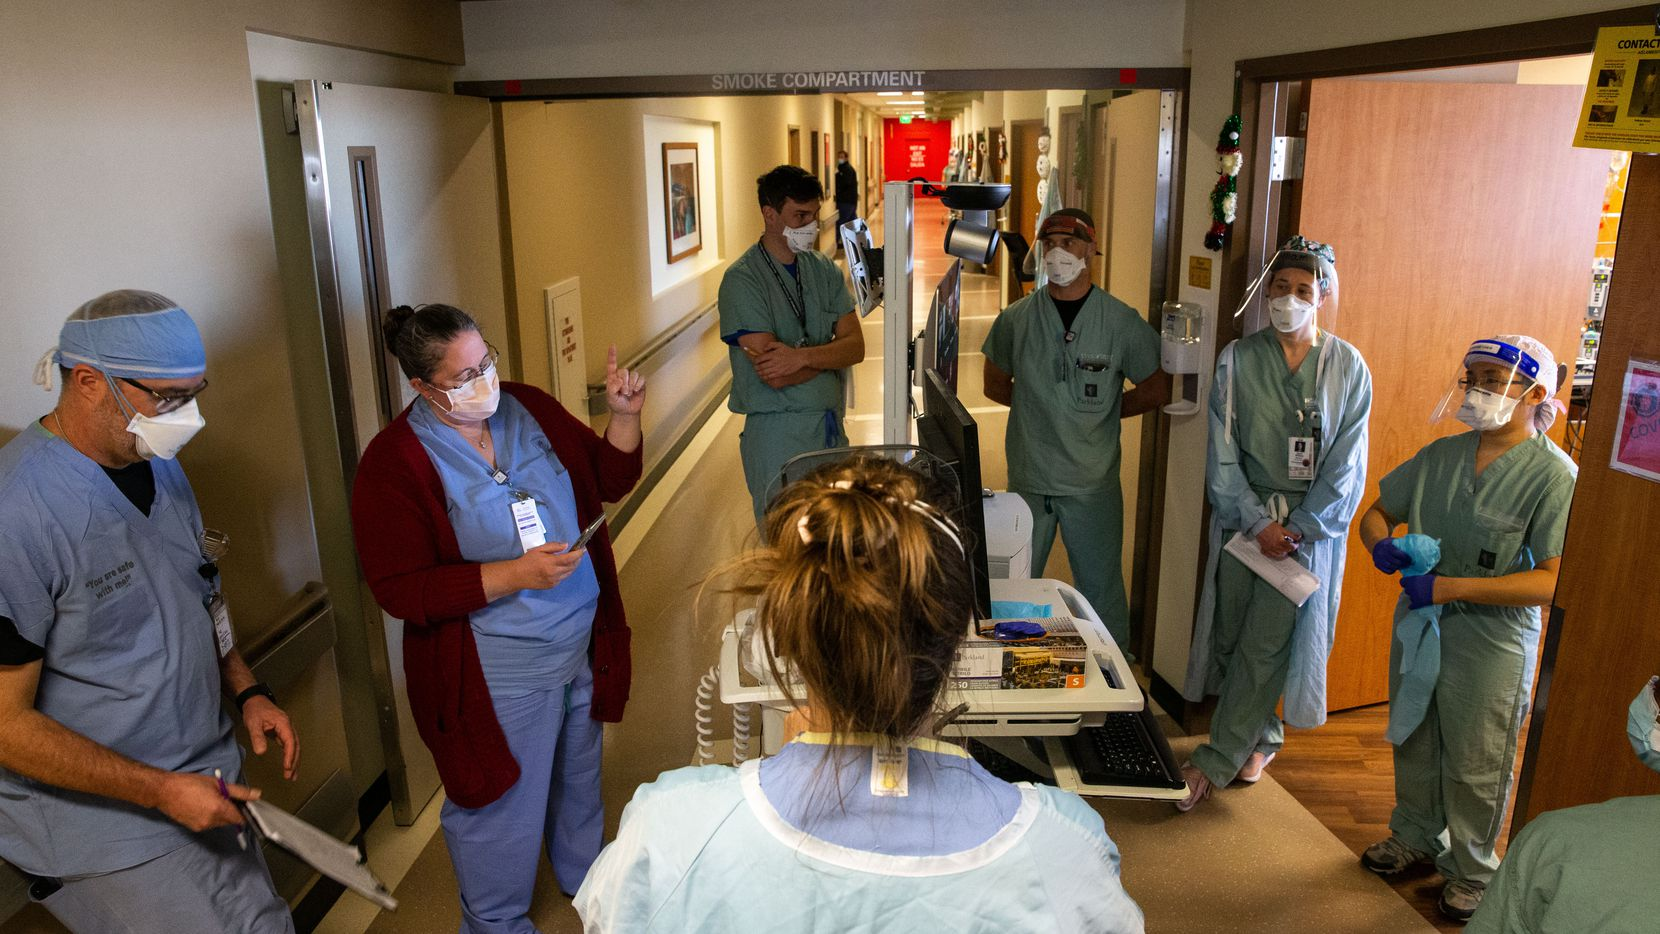 """Rowley (second from left) huddles with Dr. Catherine Chen (right) and other staff members on the Progressive Care Unit of Parkland's COVID-19 Tactical Care Unit. Rowley and Chen were assessing the level of care for patients to determine whether they should be upgraded to the Intensive Care Unit or downgraded out of the TCU. """"I anticipate things are going to go poorly,"""" Rowley said, referencing high travel numbers over the Thanksgiving holiday. """"There's not going to be a single thing we can do to stop it. And all we can do is hope that we can keep enough people alive that can defeat this disease."""""""